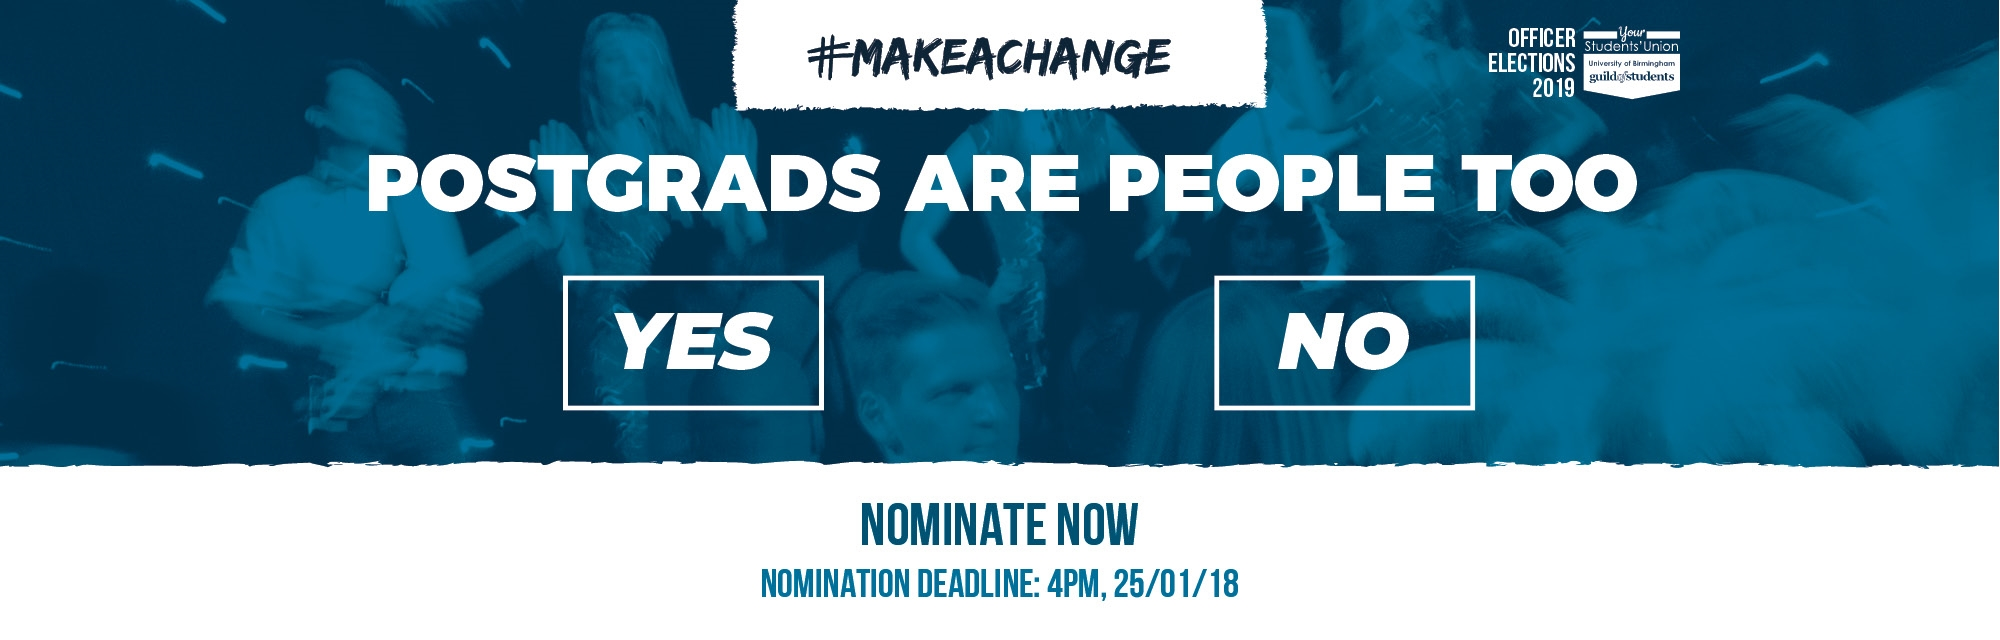 #makeachange - Postgrads are people too - Nominate Now